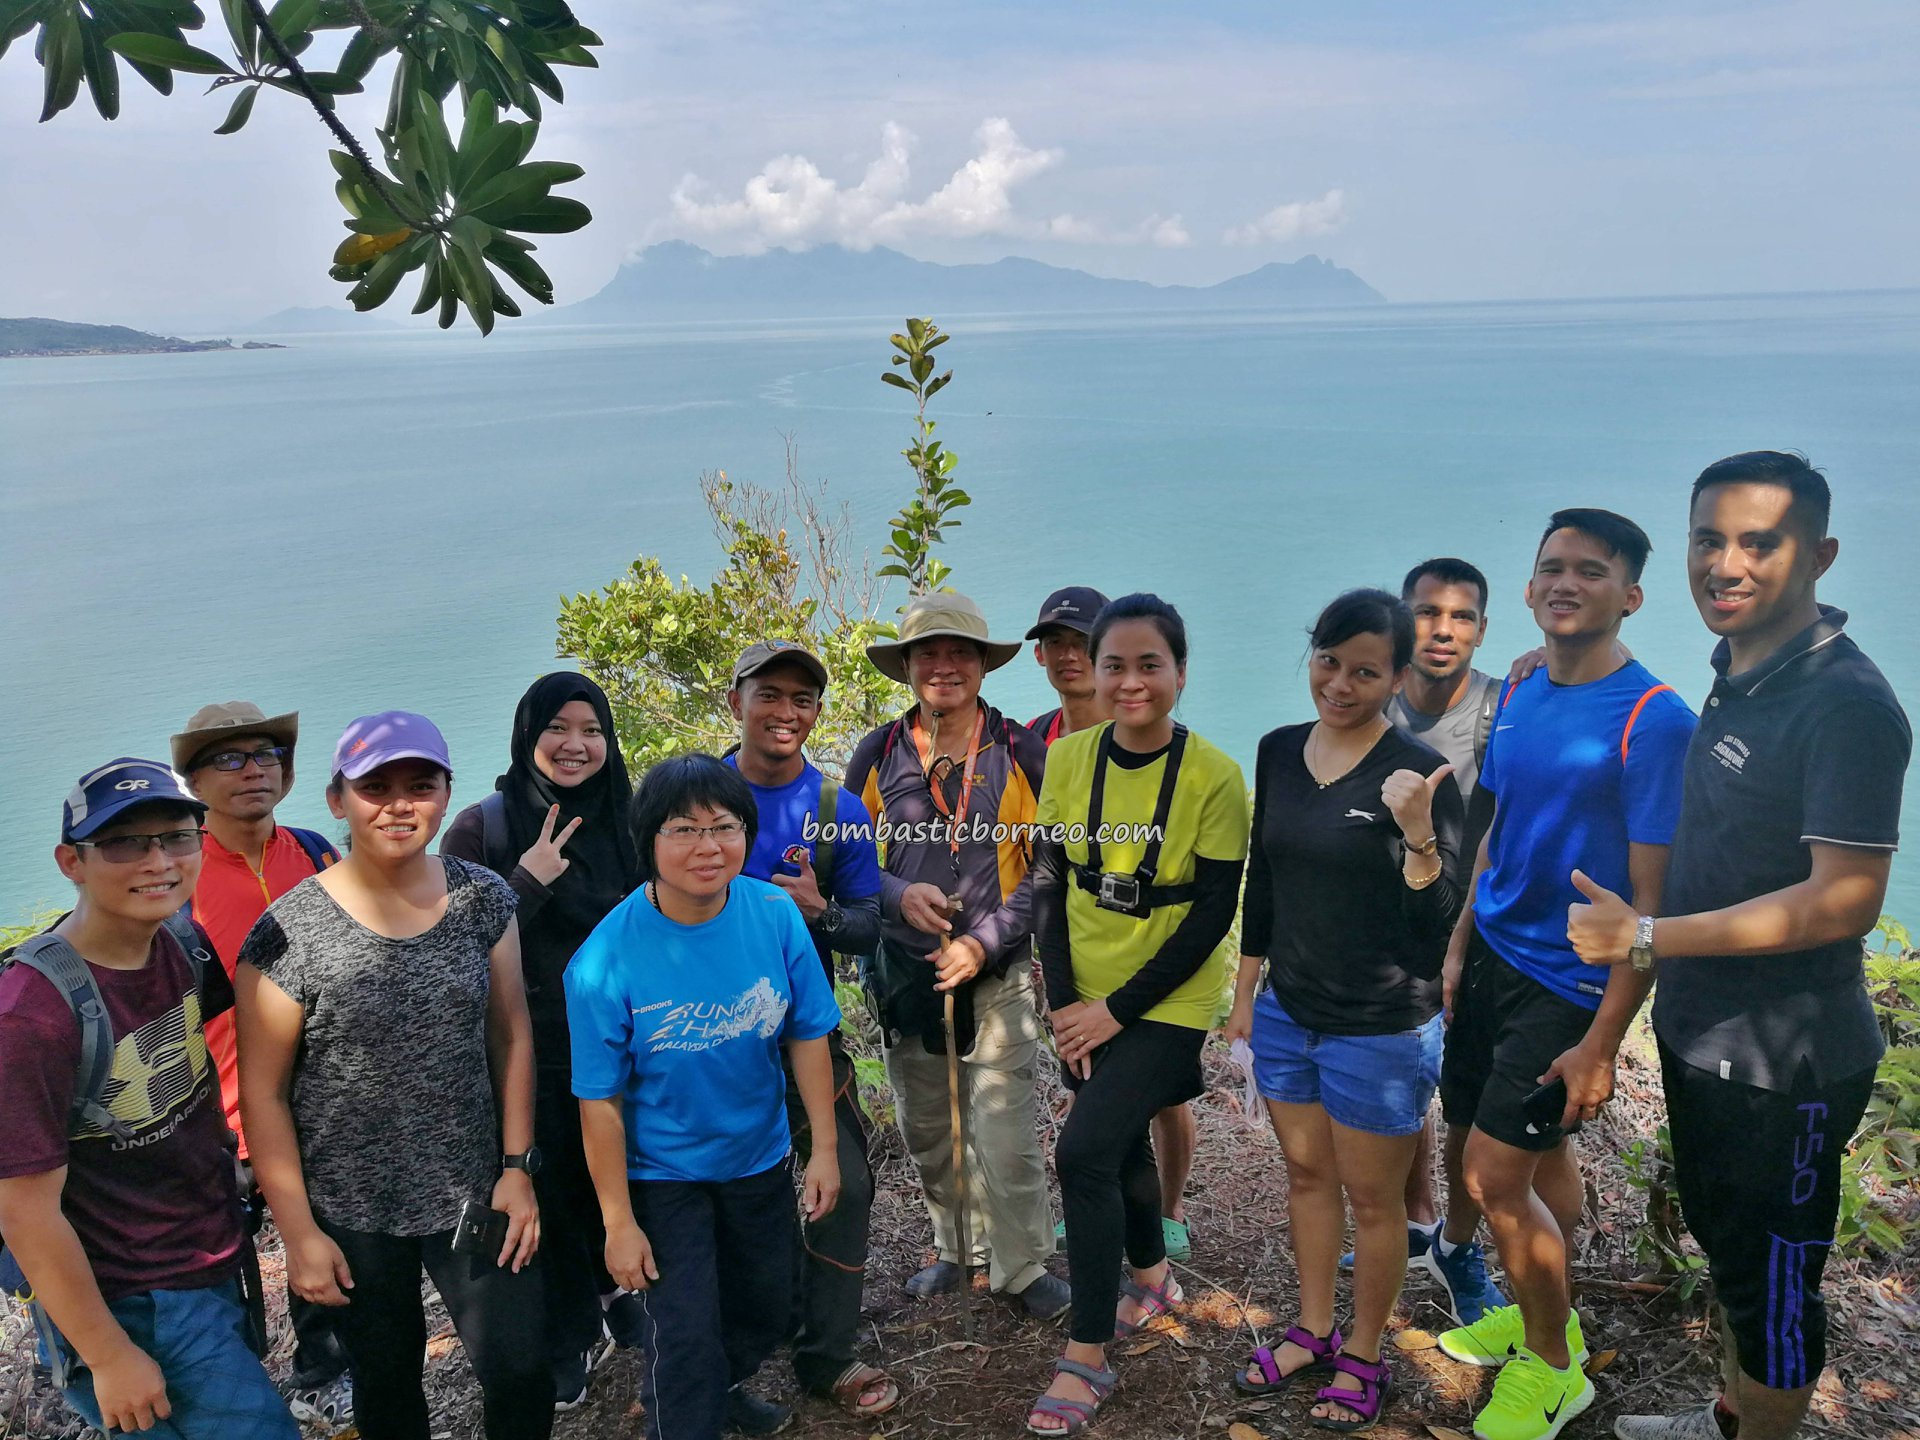 Island, Taman Negara, Bako National Park, adventure, nature, outdoor, jungle trekking, destination, Borneo, hidden paradise, Kuching, Tourism, view point, crossborder, 马来西亚巴哥国家公园, 婆罗洲旅游景点,